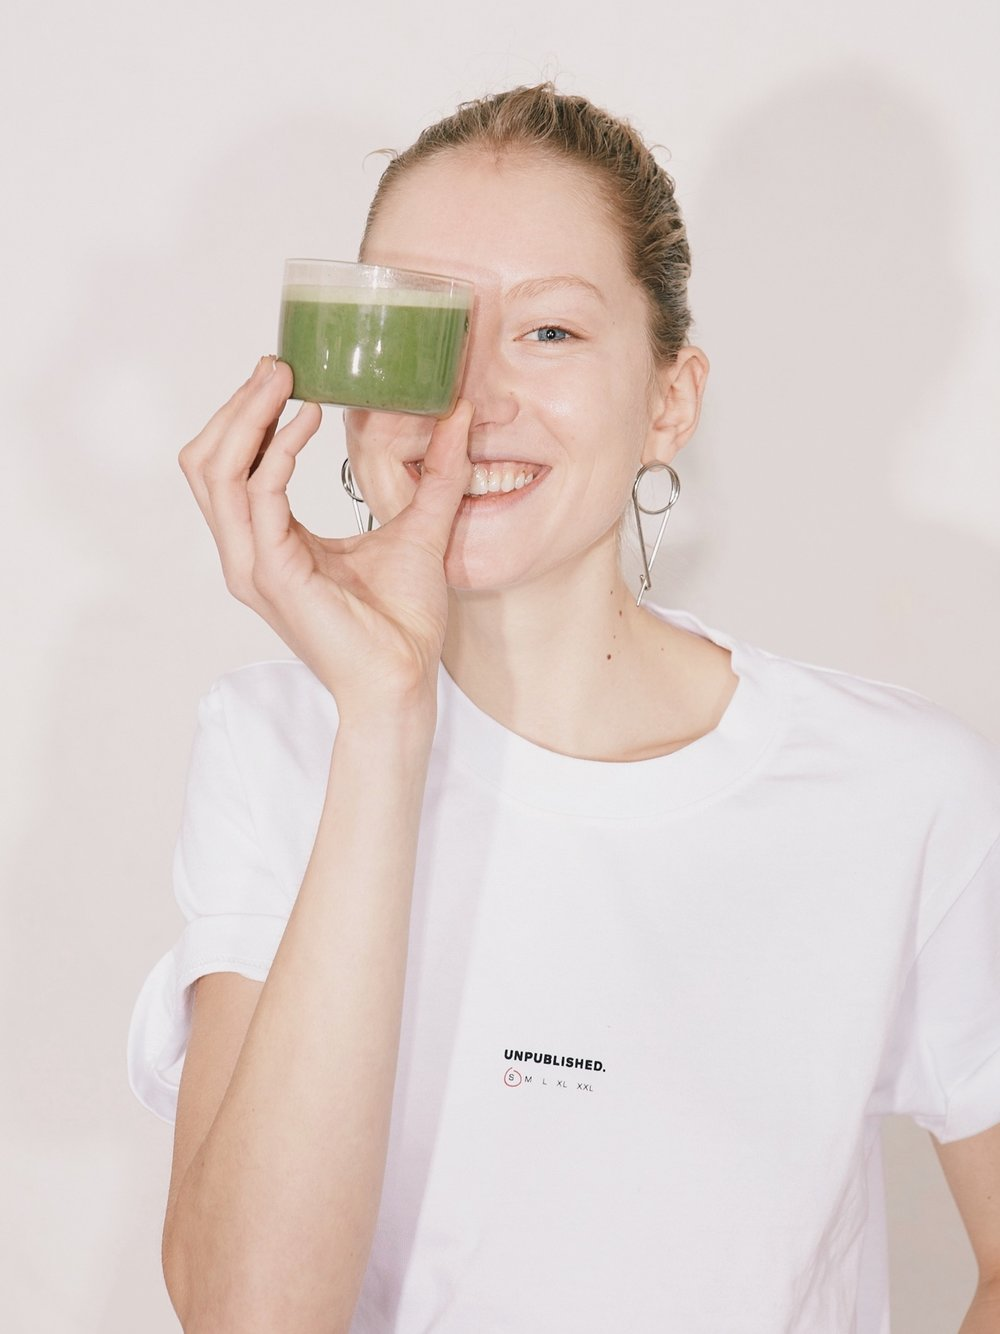 Sandra Martens - Founder and Head of MarketingSandra studies alternative medicine and nutrition. She loves creating her own superfood mixtures to elevate the body and the mind.Starting her day with the intake of organic and nutrient dense superfood mixtures, she believes that it affects at least 50% of her day.